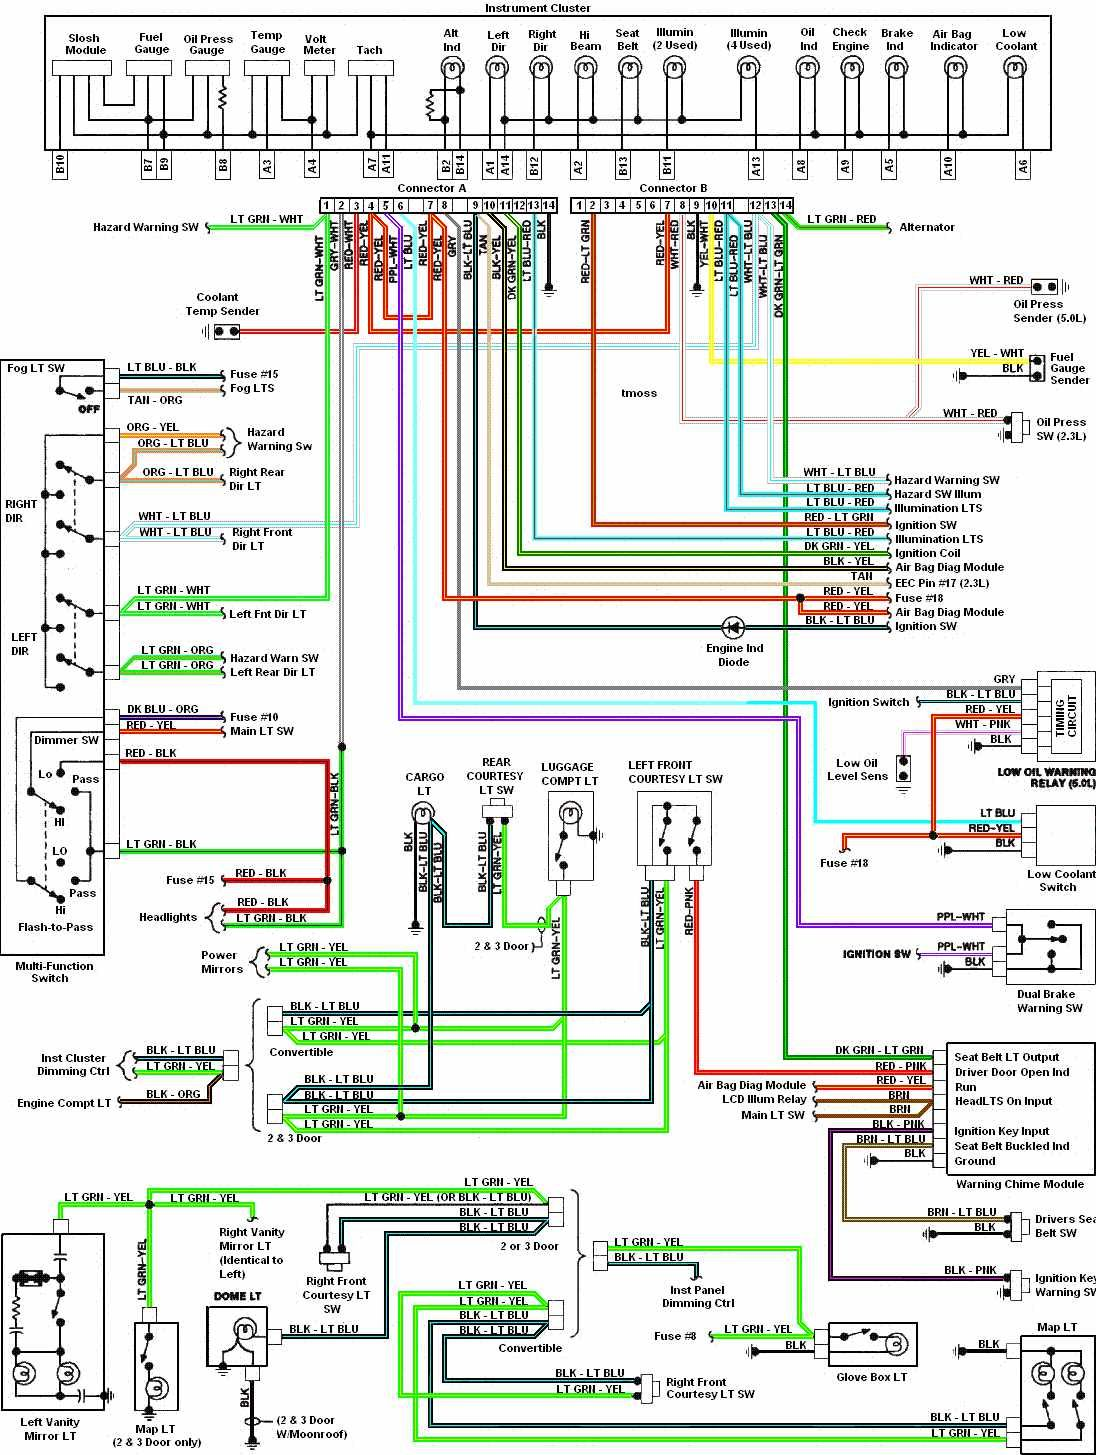 90 mustang dash wiring diagram detailed schematics diagram rh  lelandlutheran com 2001 Mustang Engine Diagram 1995